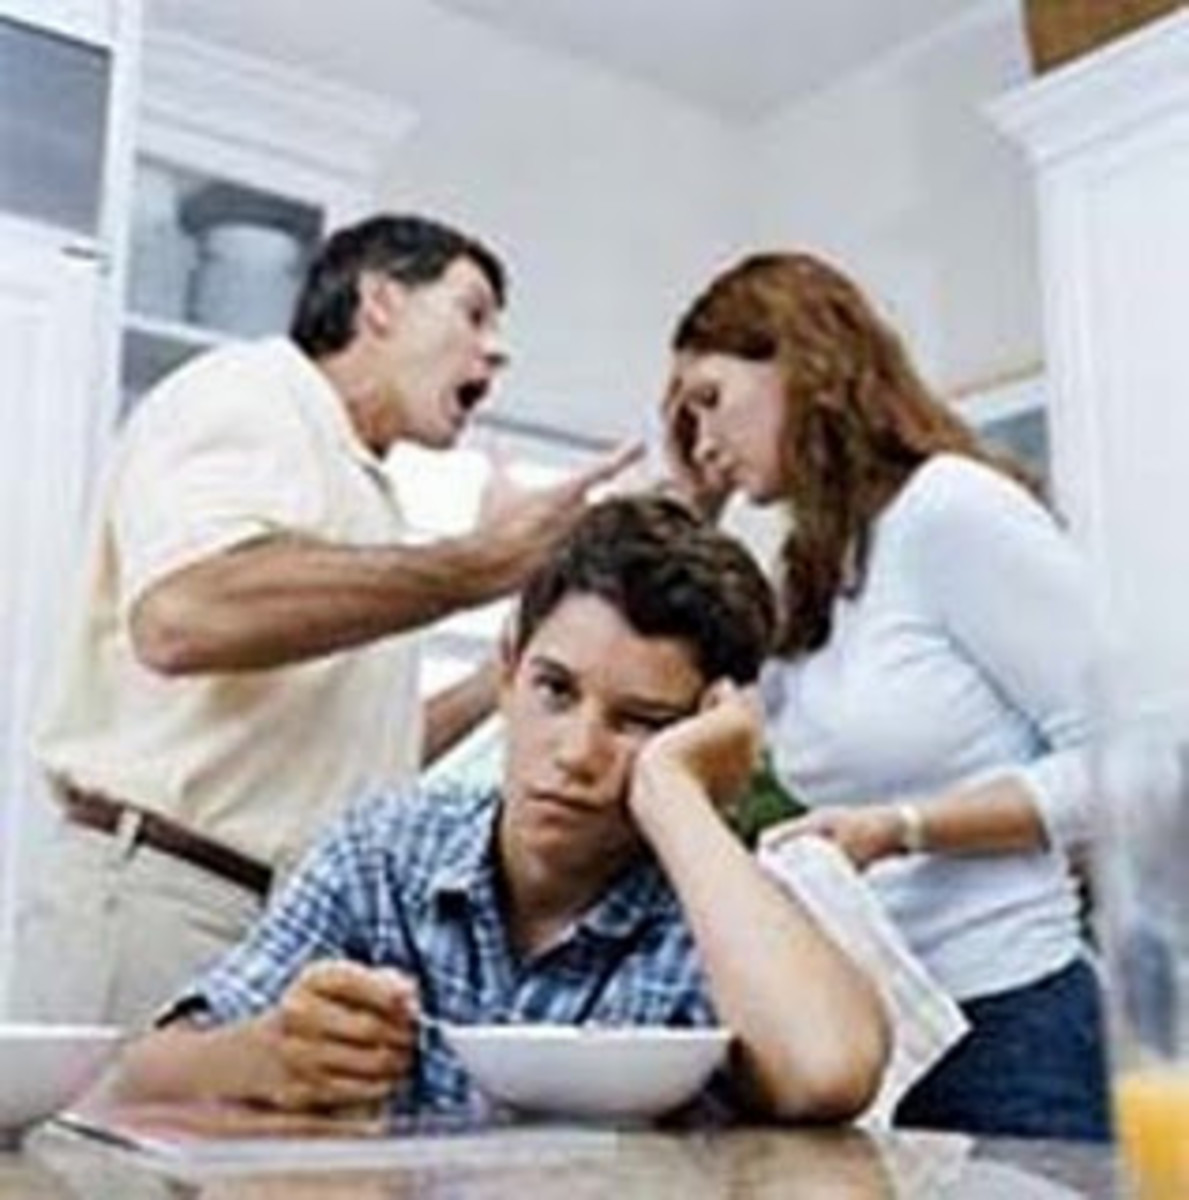 Never fight in front of your children. There are some things they should not see.